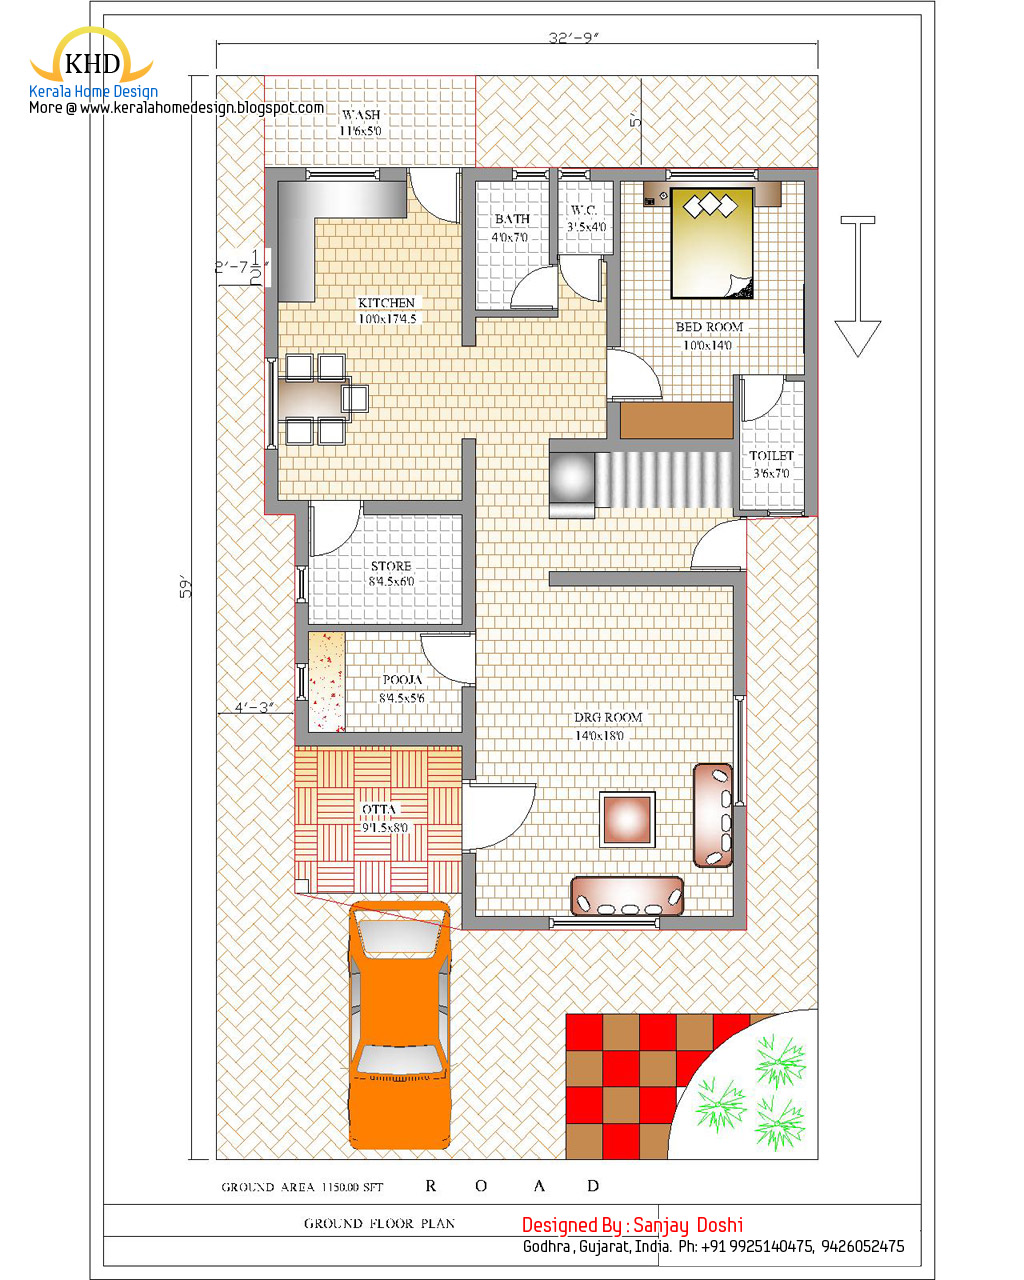 Duplex House Plan And Elevation Ground Floor Plan   215 Sq M (2310 Sq.